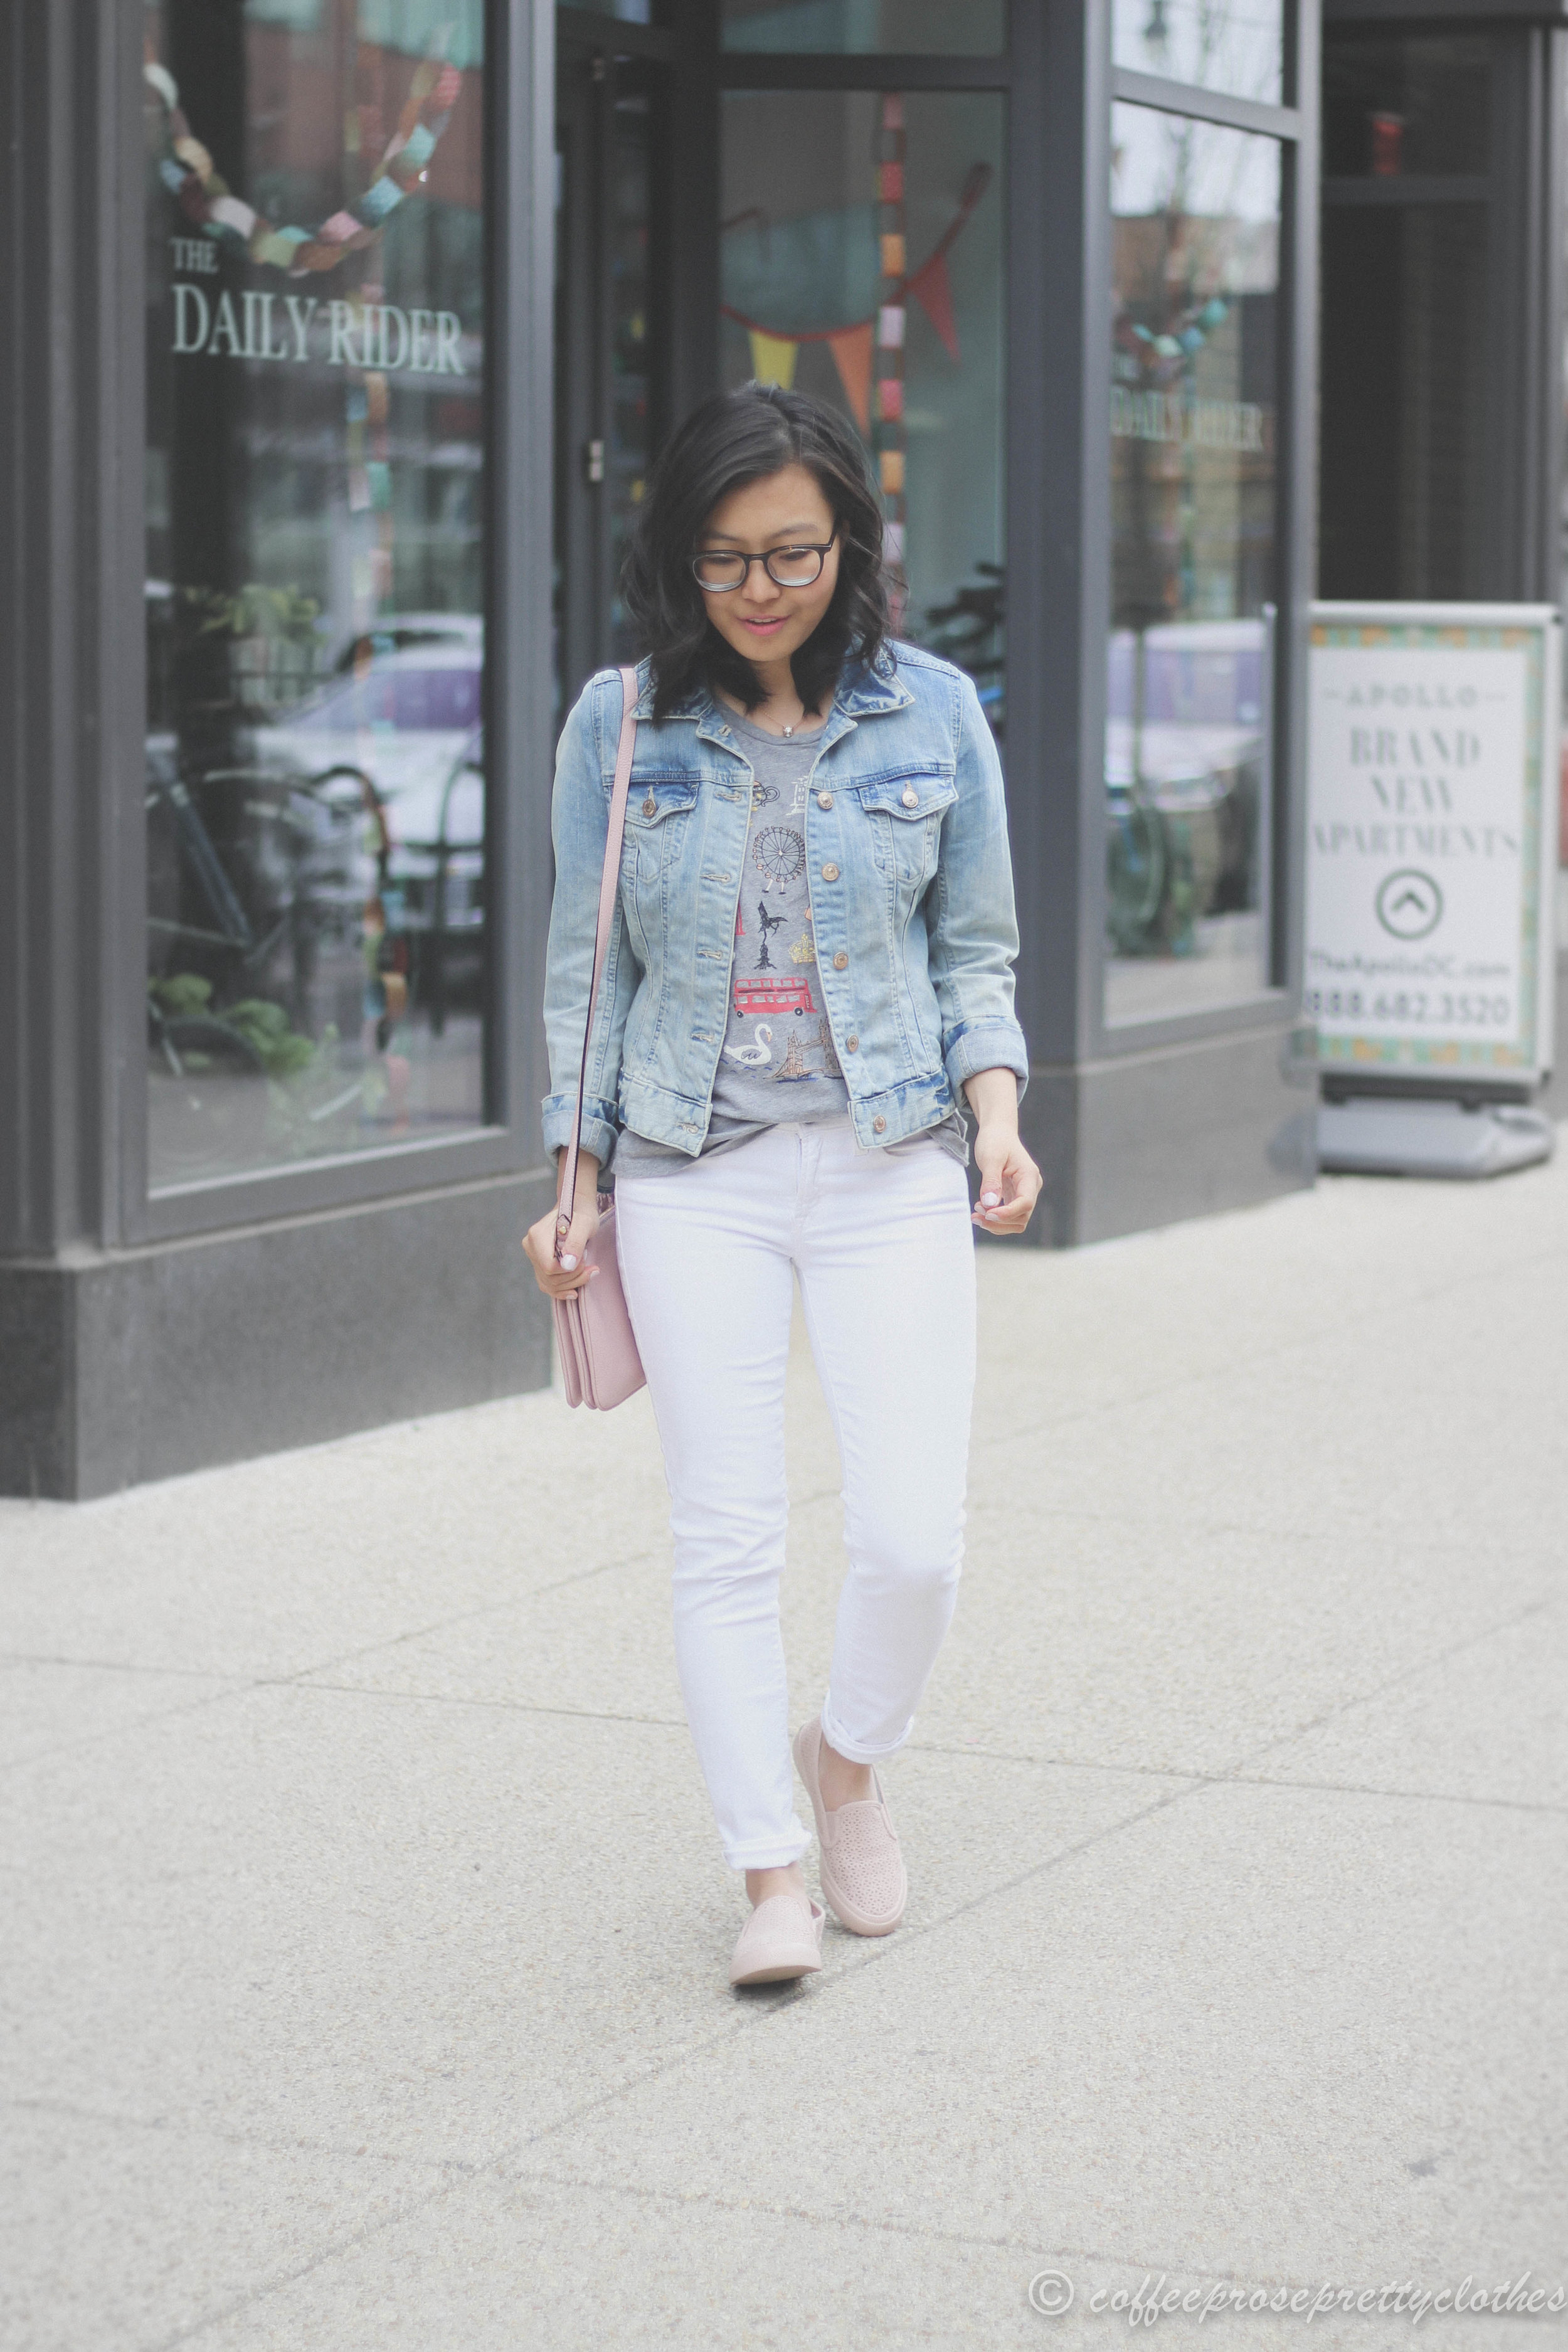 Double Denim | Blush Sneakers and Denim Jacket